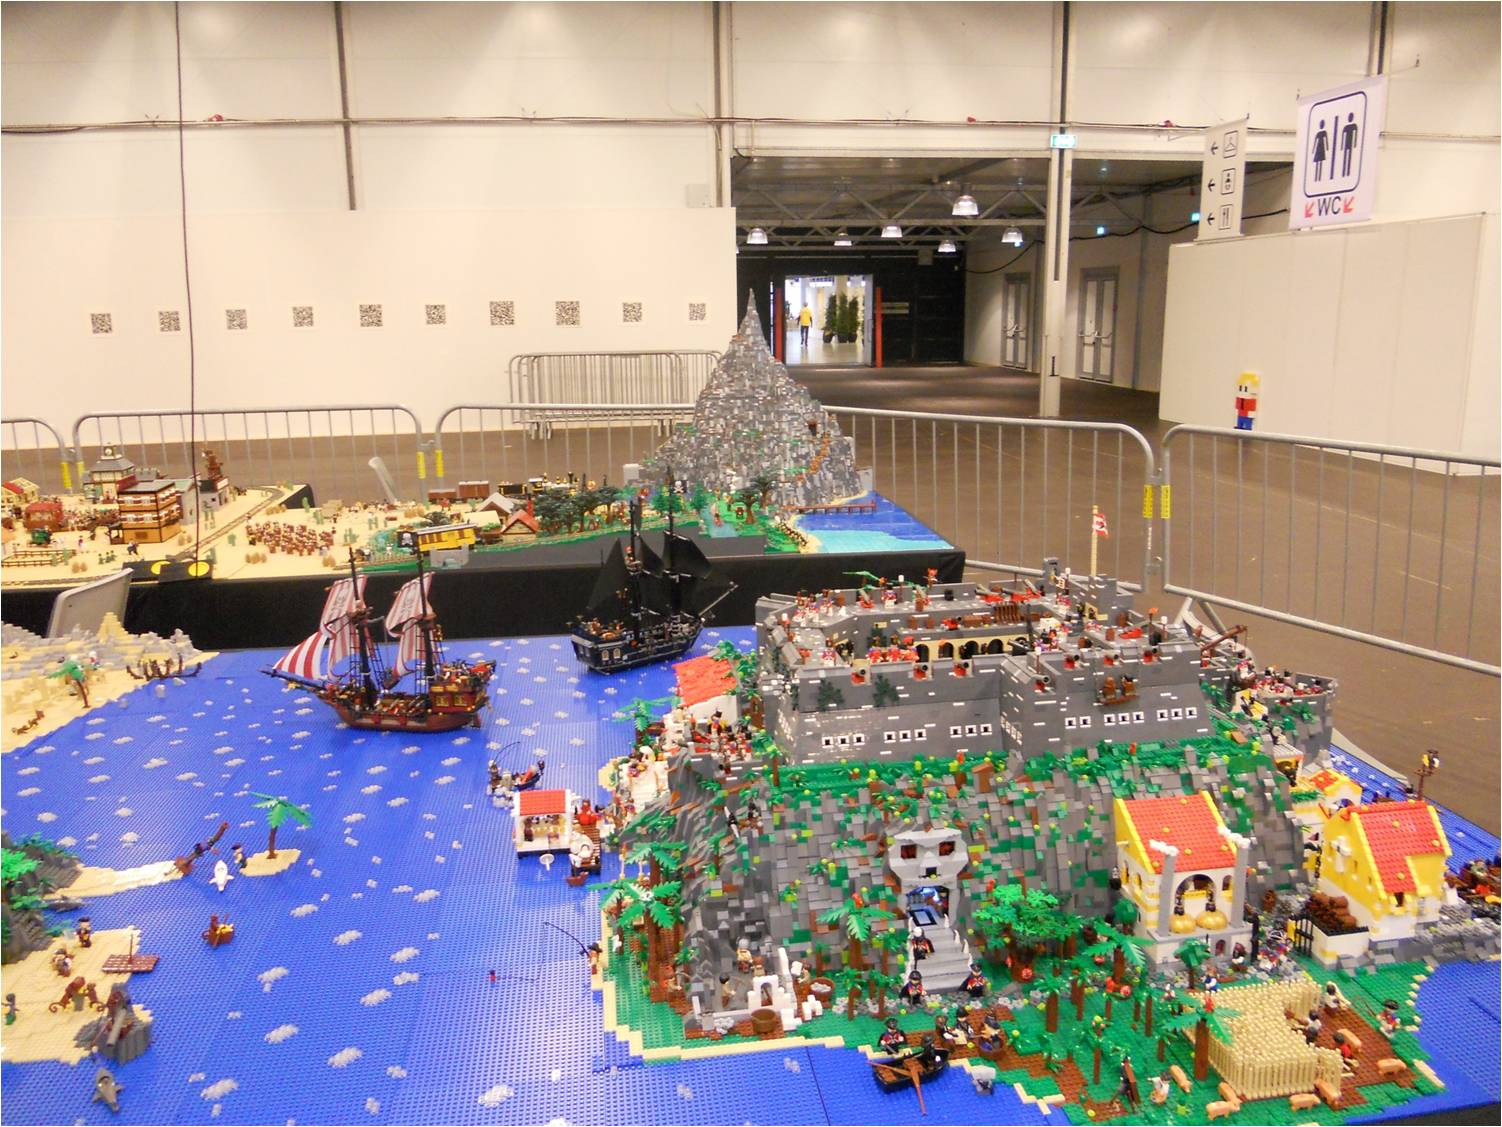 lego_world_043.jpg